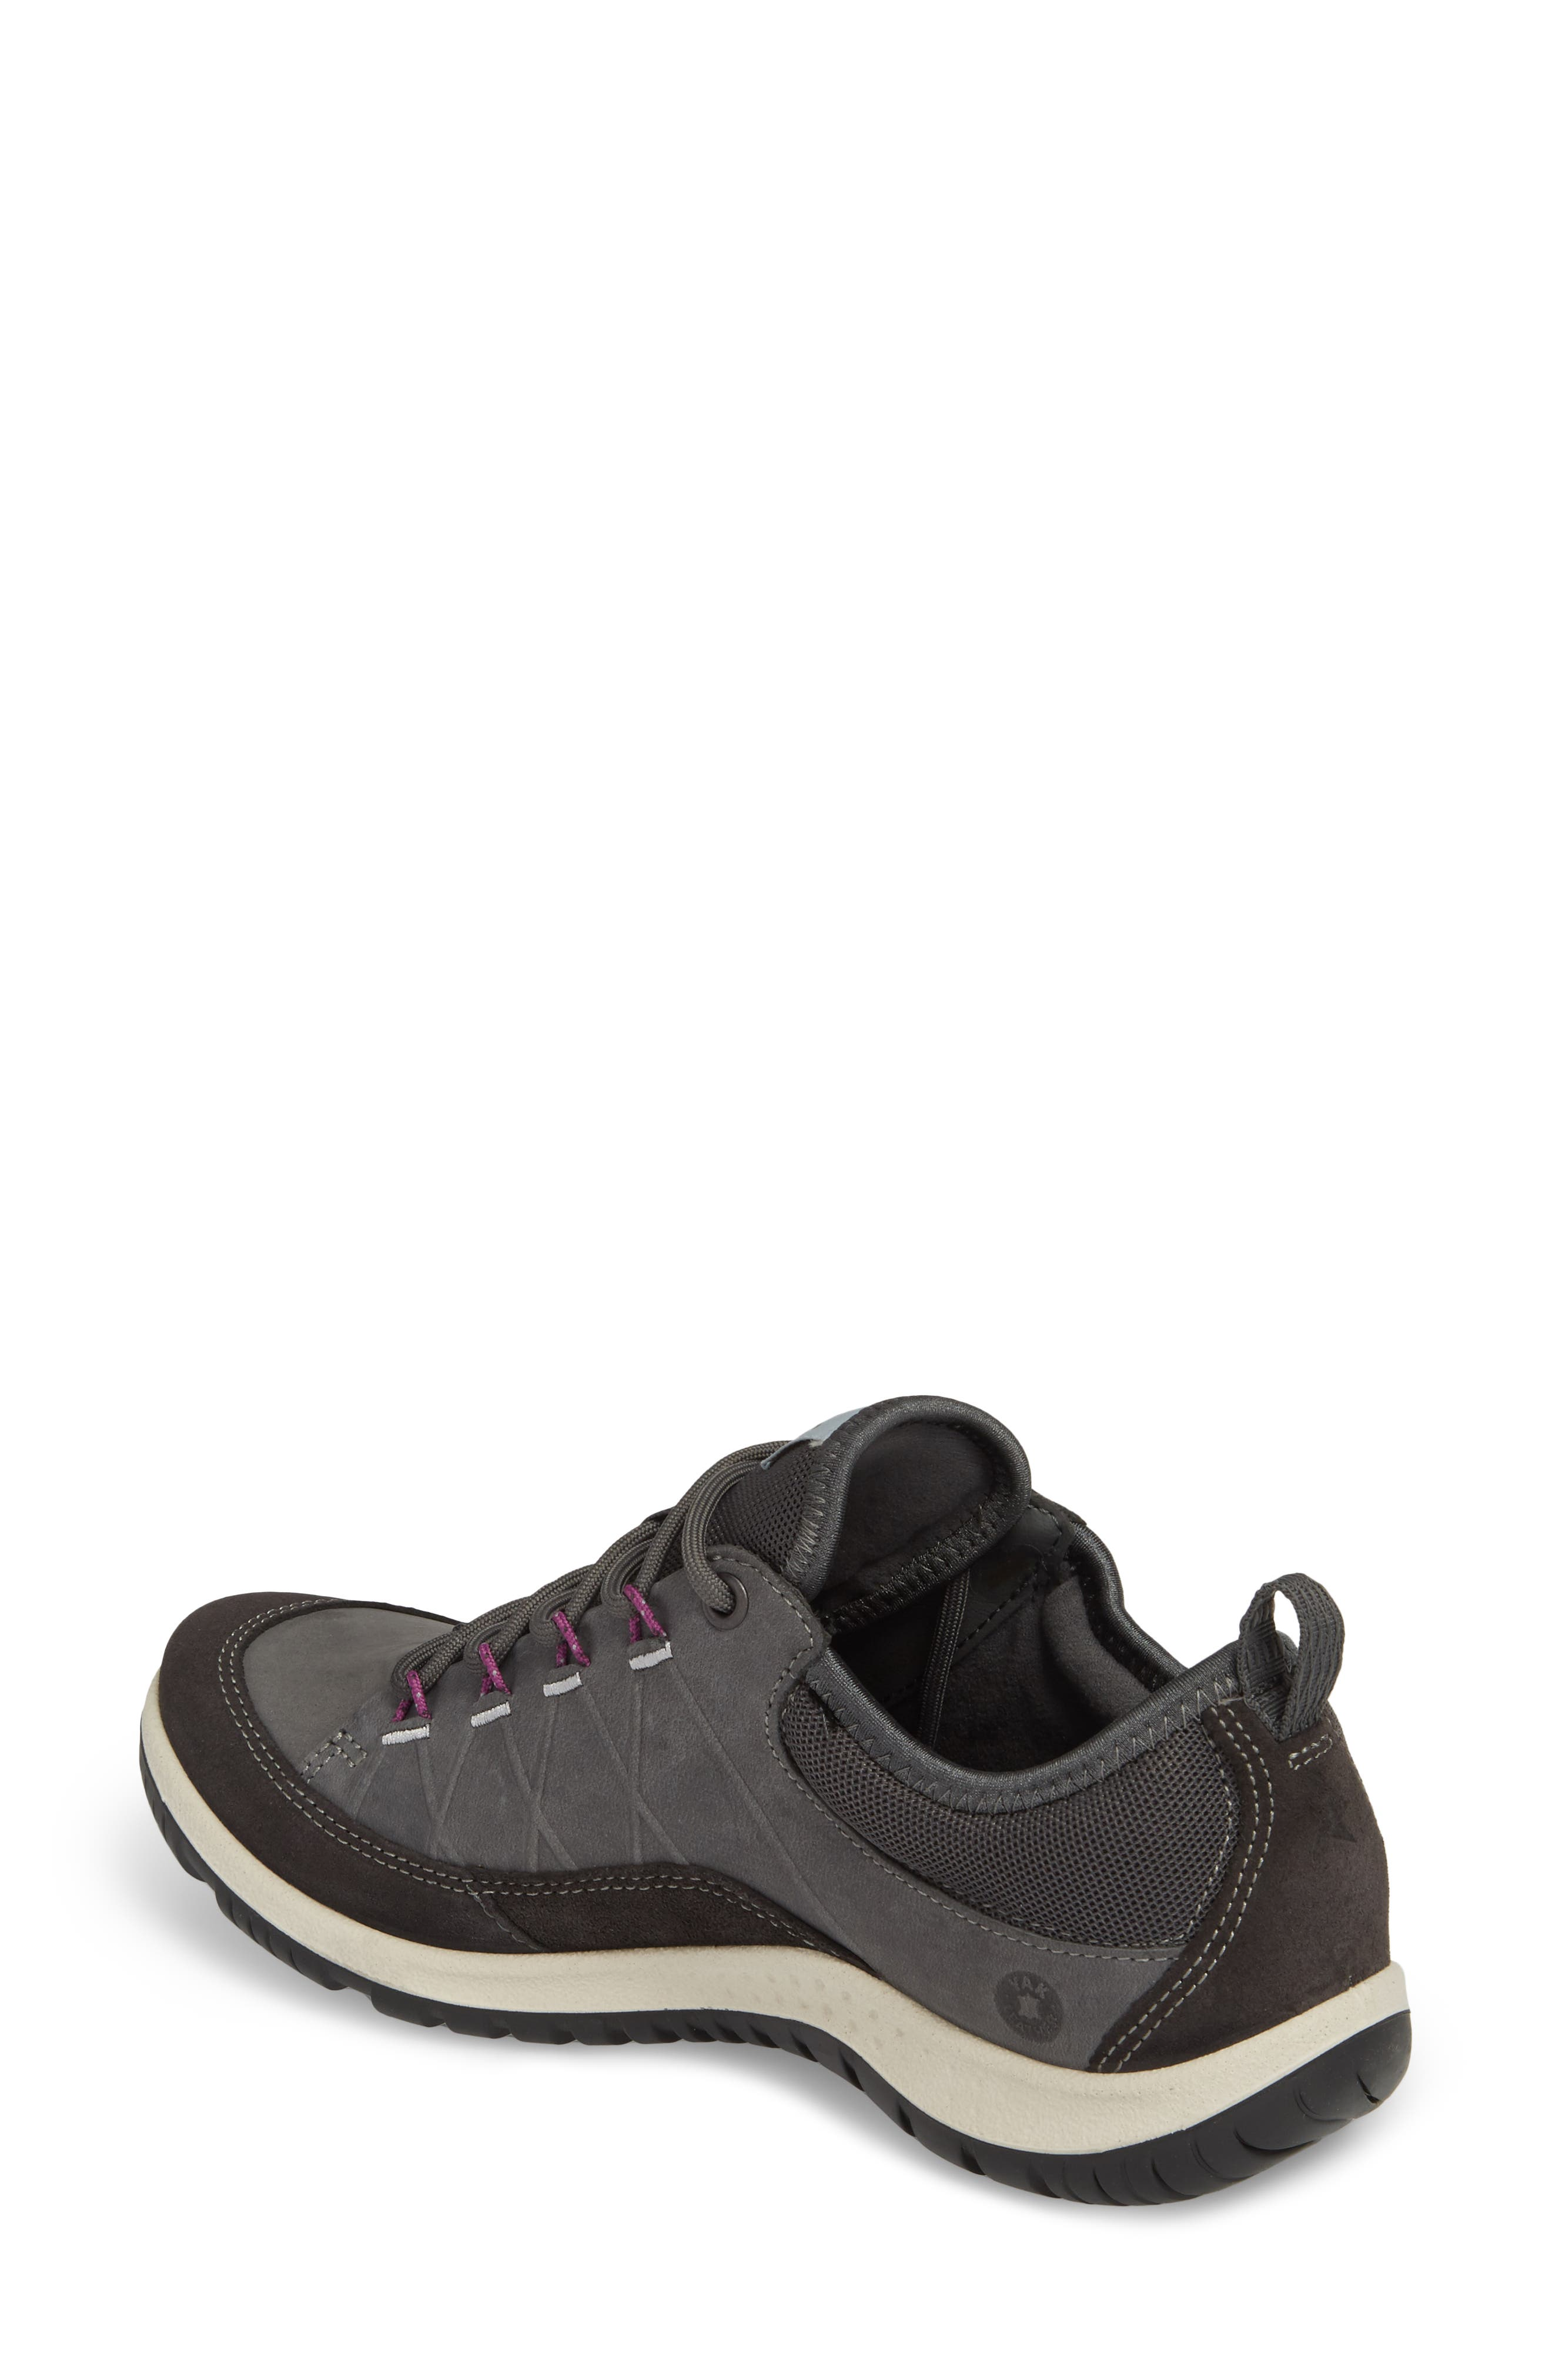 'Aspina' Sneaker,                             Alternate thumbnail 2, color,                             Moonless Leather